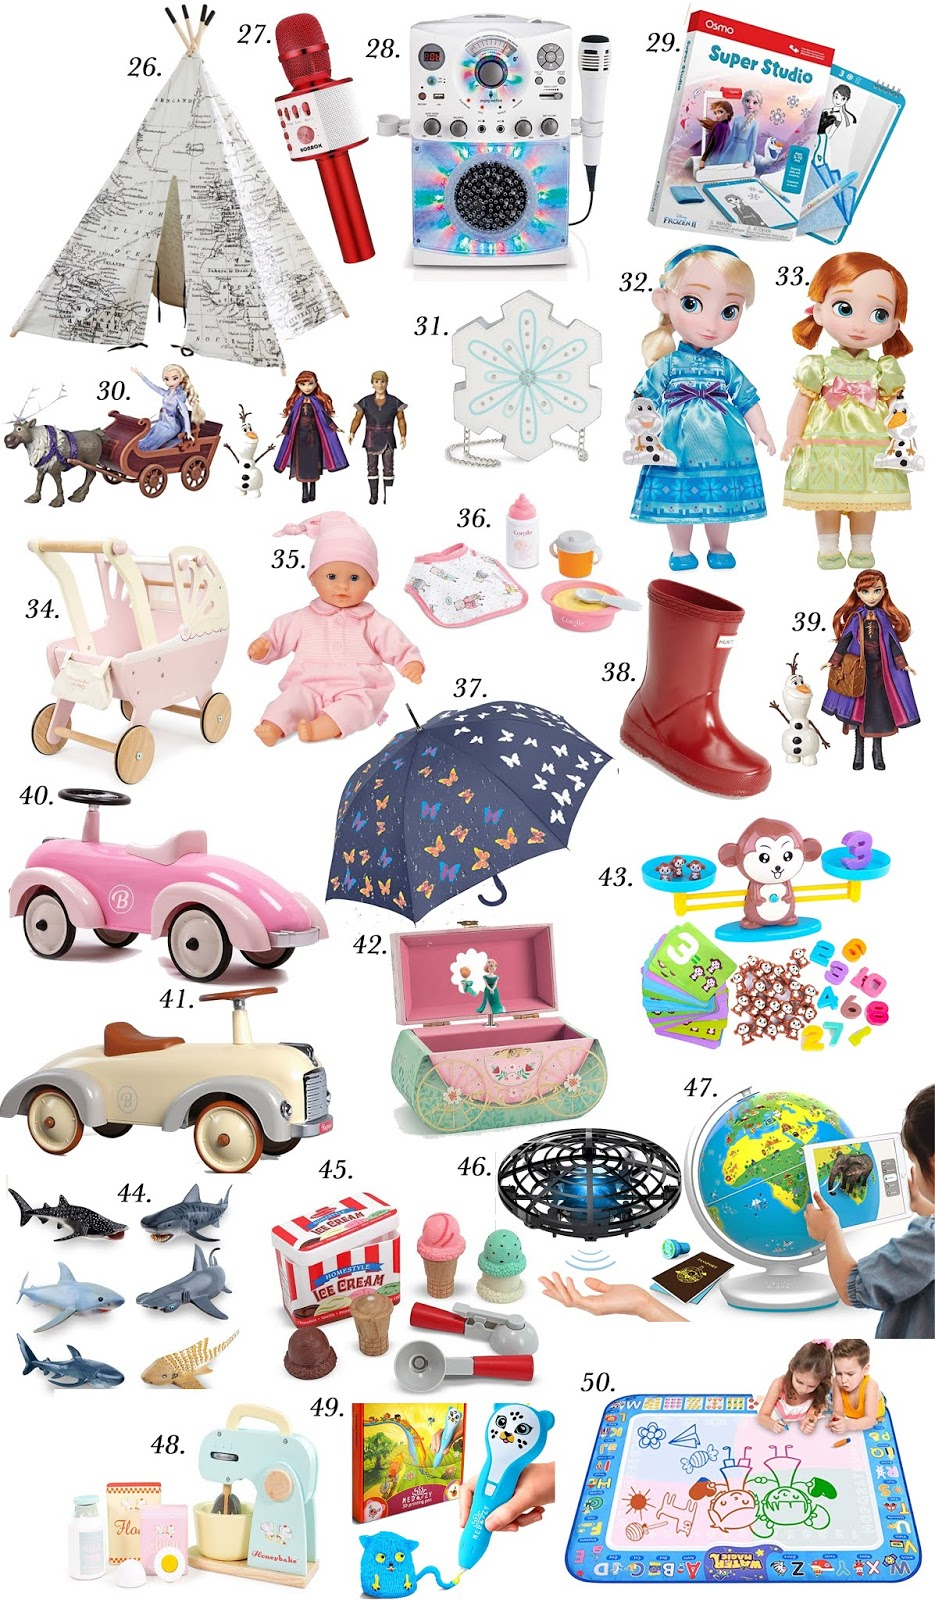 50 Gift Ideas for Kids of all ages - Something Delightful Blog